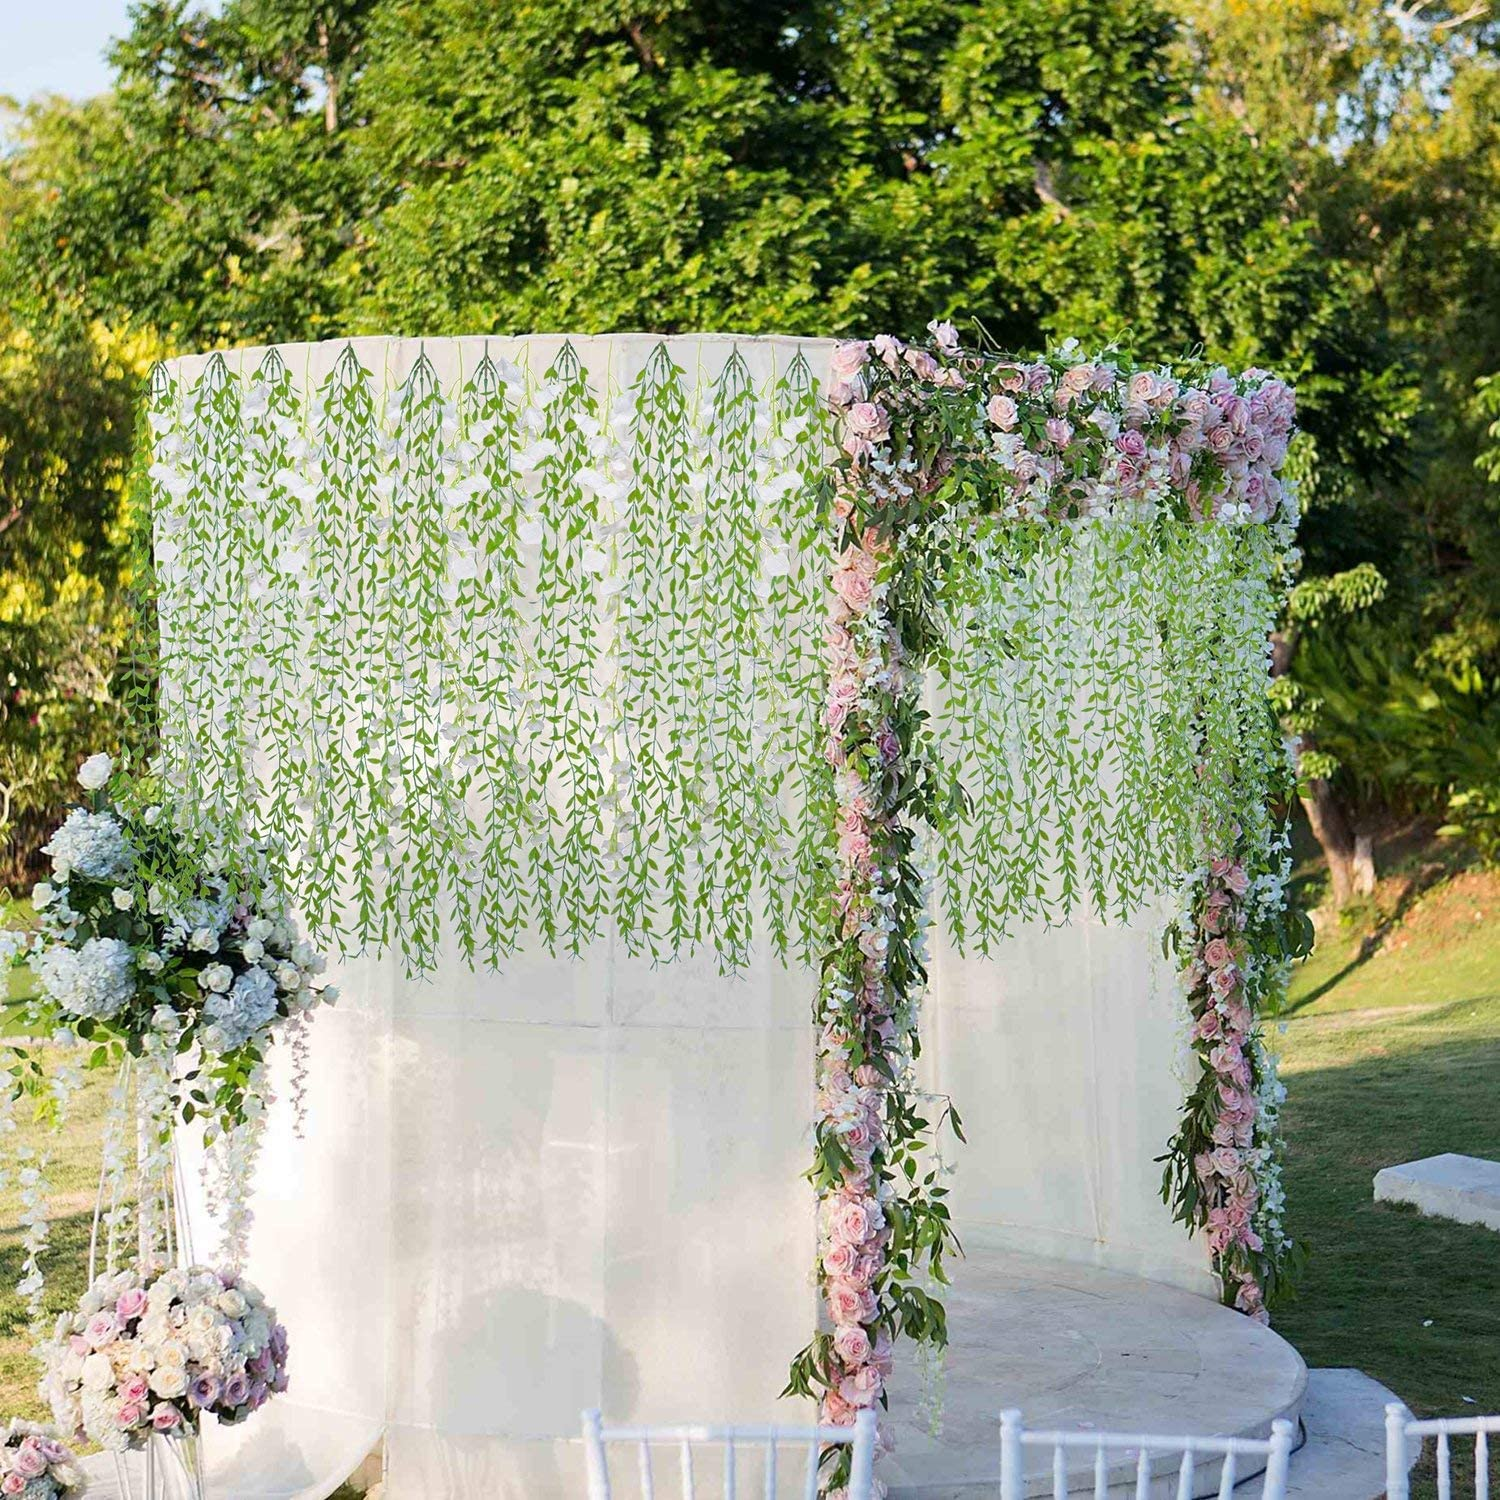 Artificial Plants 28Ft 3.5 Ft//Piece 8 Pack Eokeanon Garland Greenery Fake Hanging Leaves Artificial Leaves for Outdoor Wedding Party Garden Home Wall Decoration